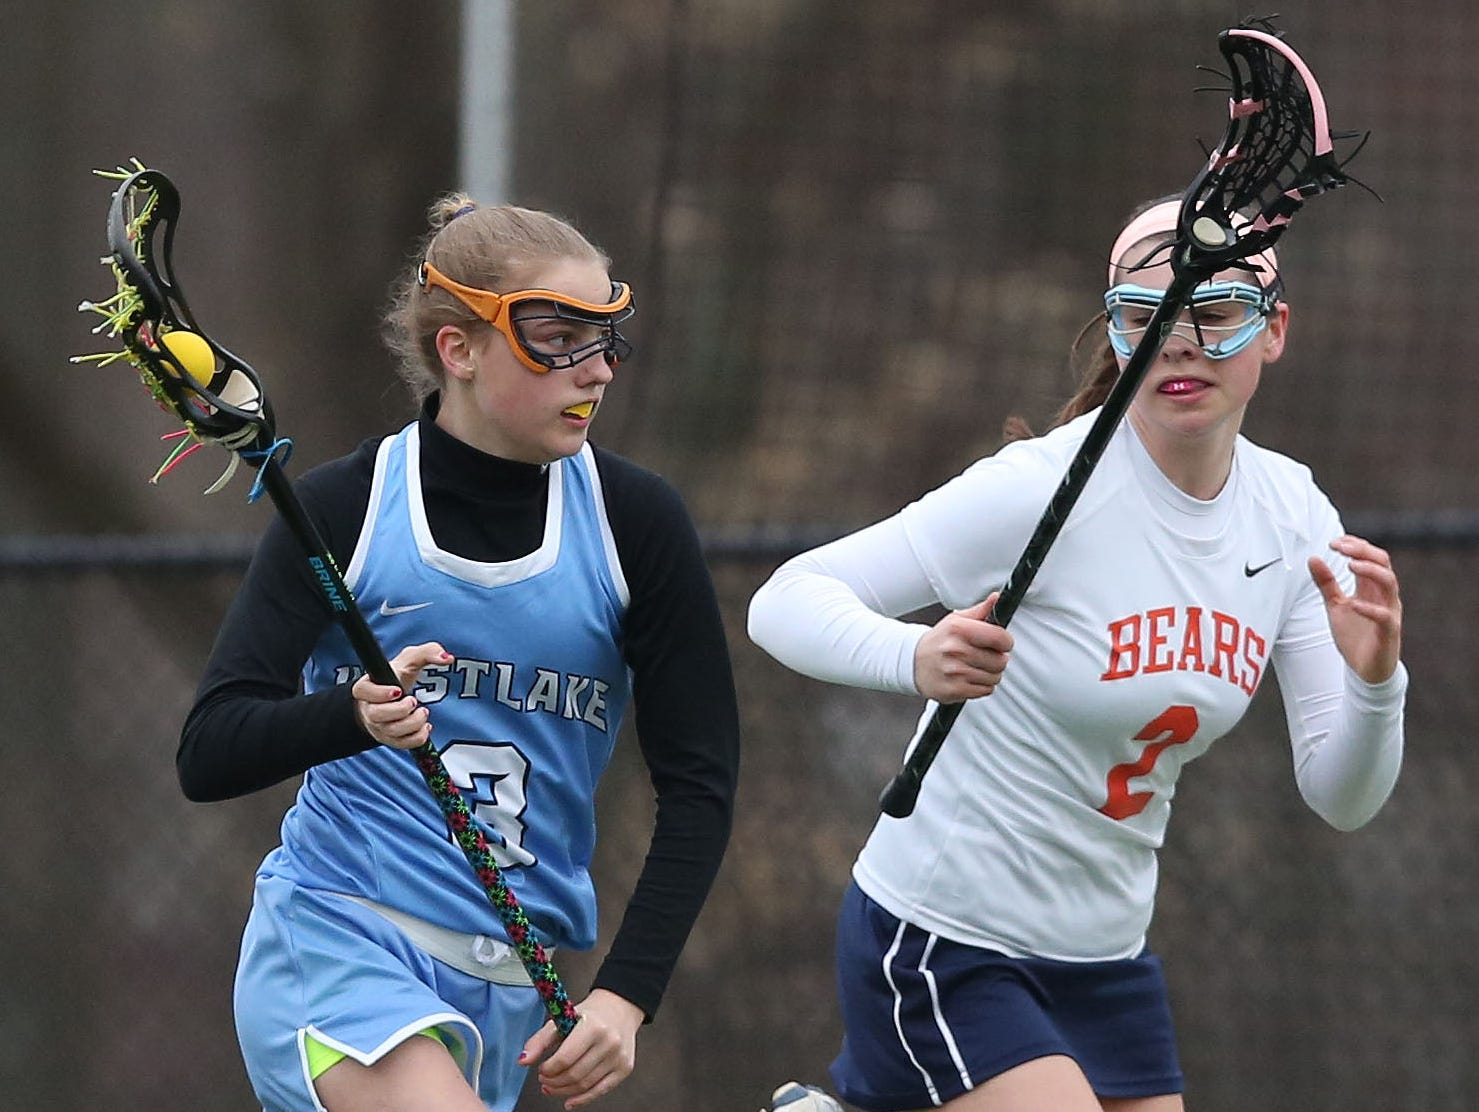 Briarcliff defeated Westlake 15-9 in the championship game of the Mt. Pleasant Cup girls lacrosse tournament at Briarcliff High School March 24, 2016.